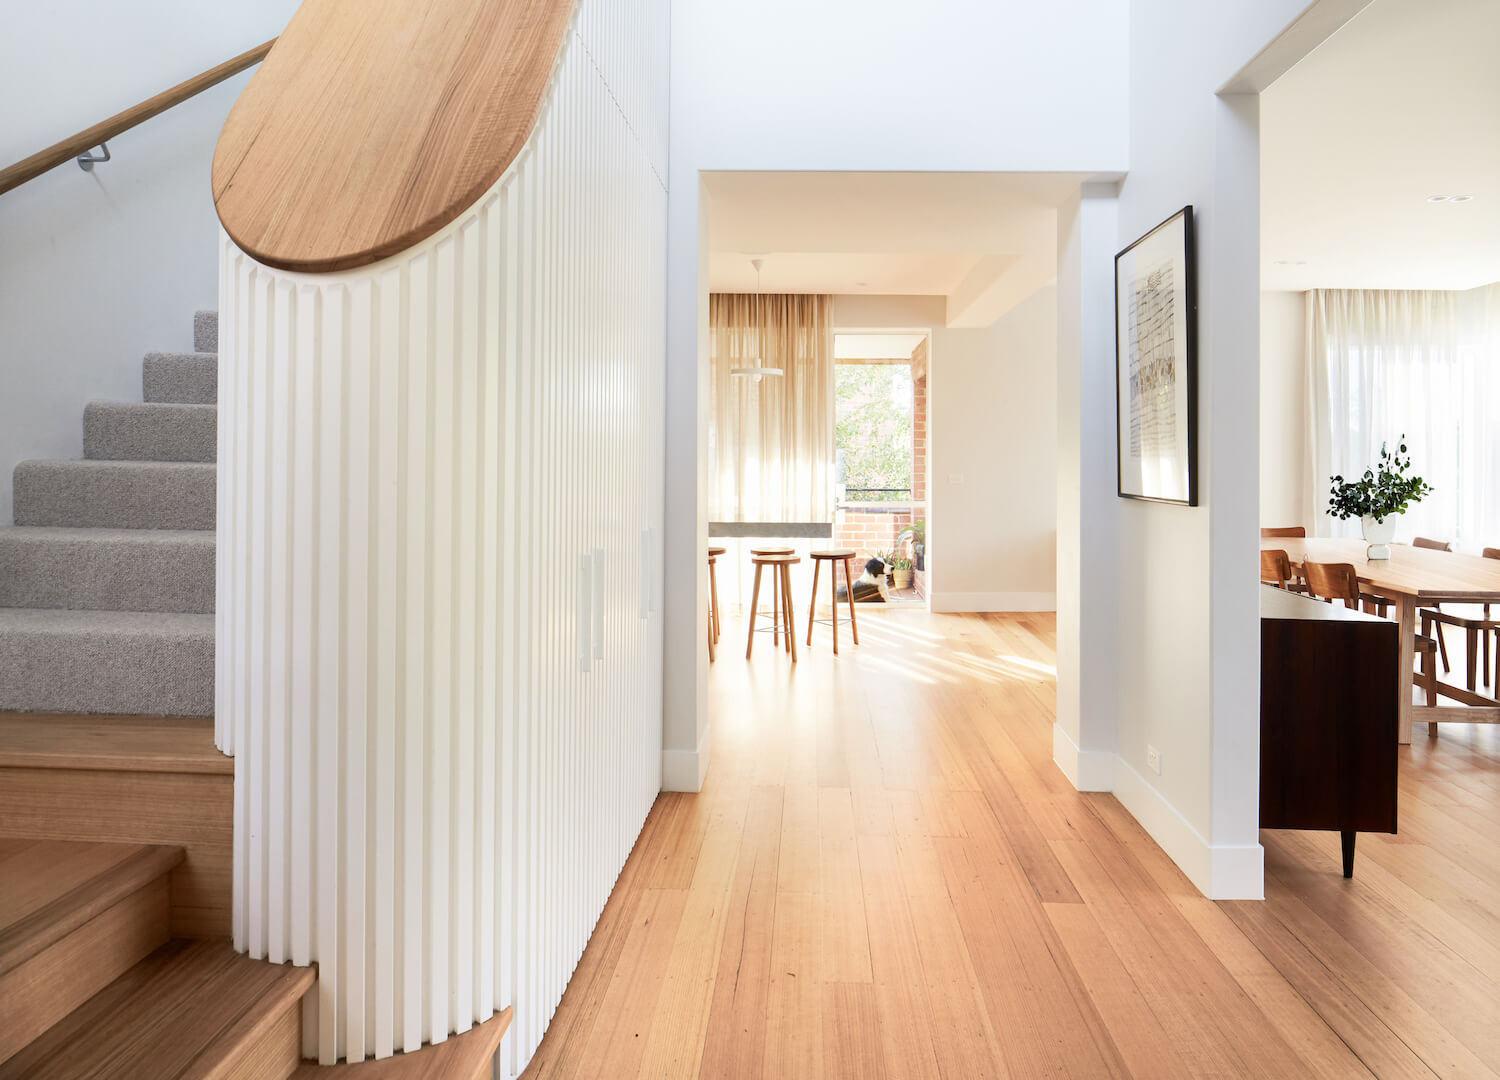 est living australian interiors Architecture Design Holroyd 04 entry2